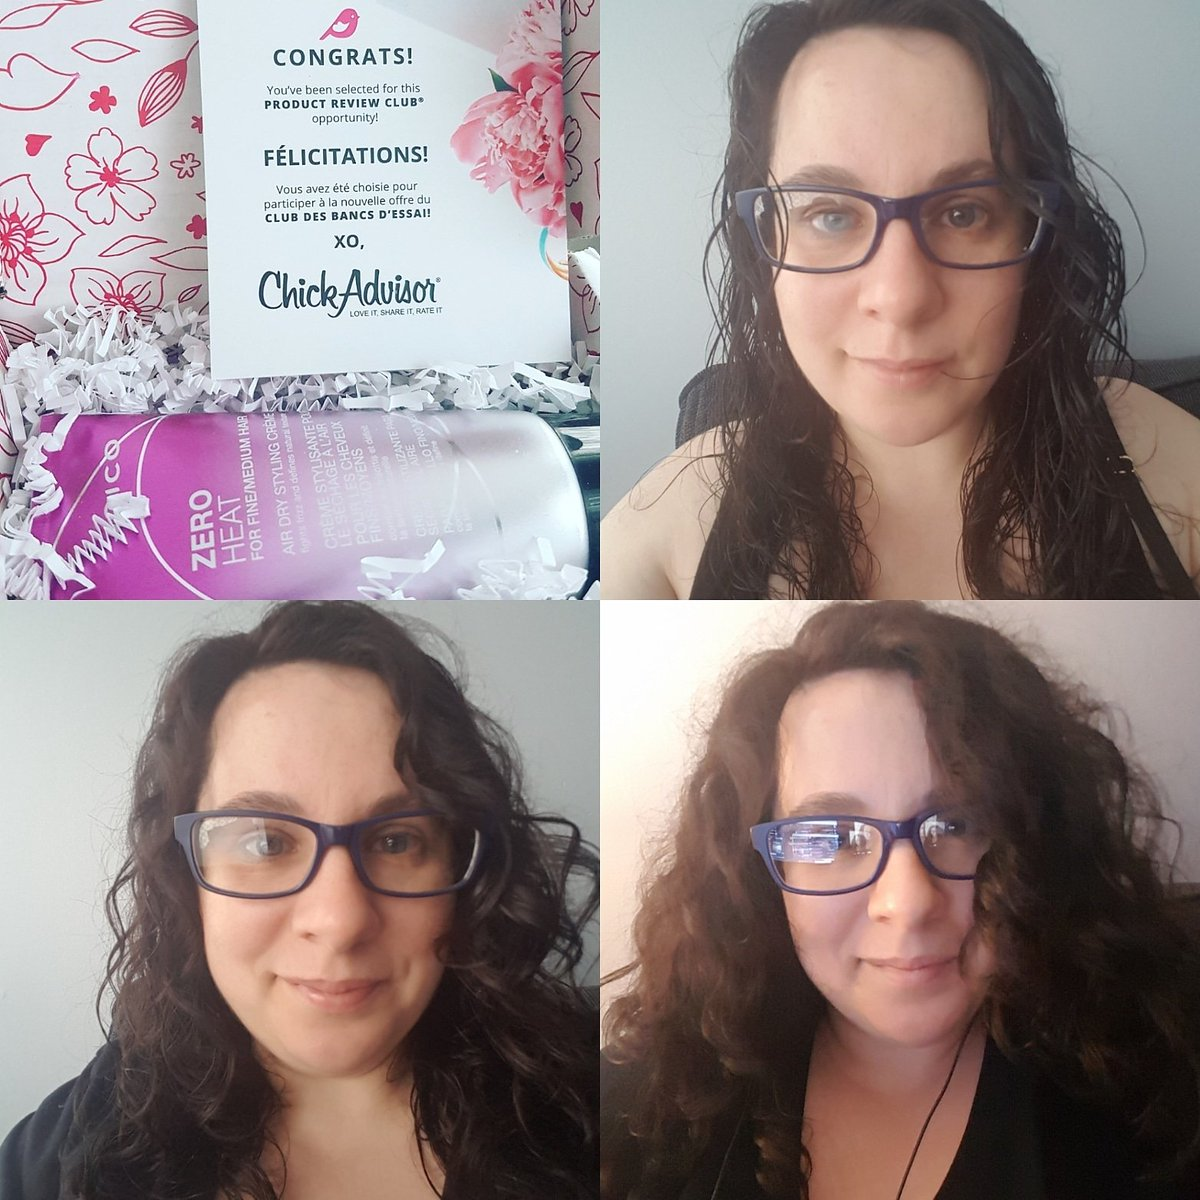 Tried #joicozeroheat today which I tested for @joicocanada and @chickadvisor  It seemed to make my hair dry quicker than it normally would. Lots of volume as you can see.  My curls however are a little less defined and a bit frizzy.   #gotitfree #haircare #hair #curlyhair #curls